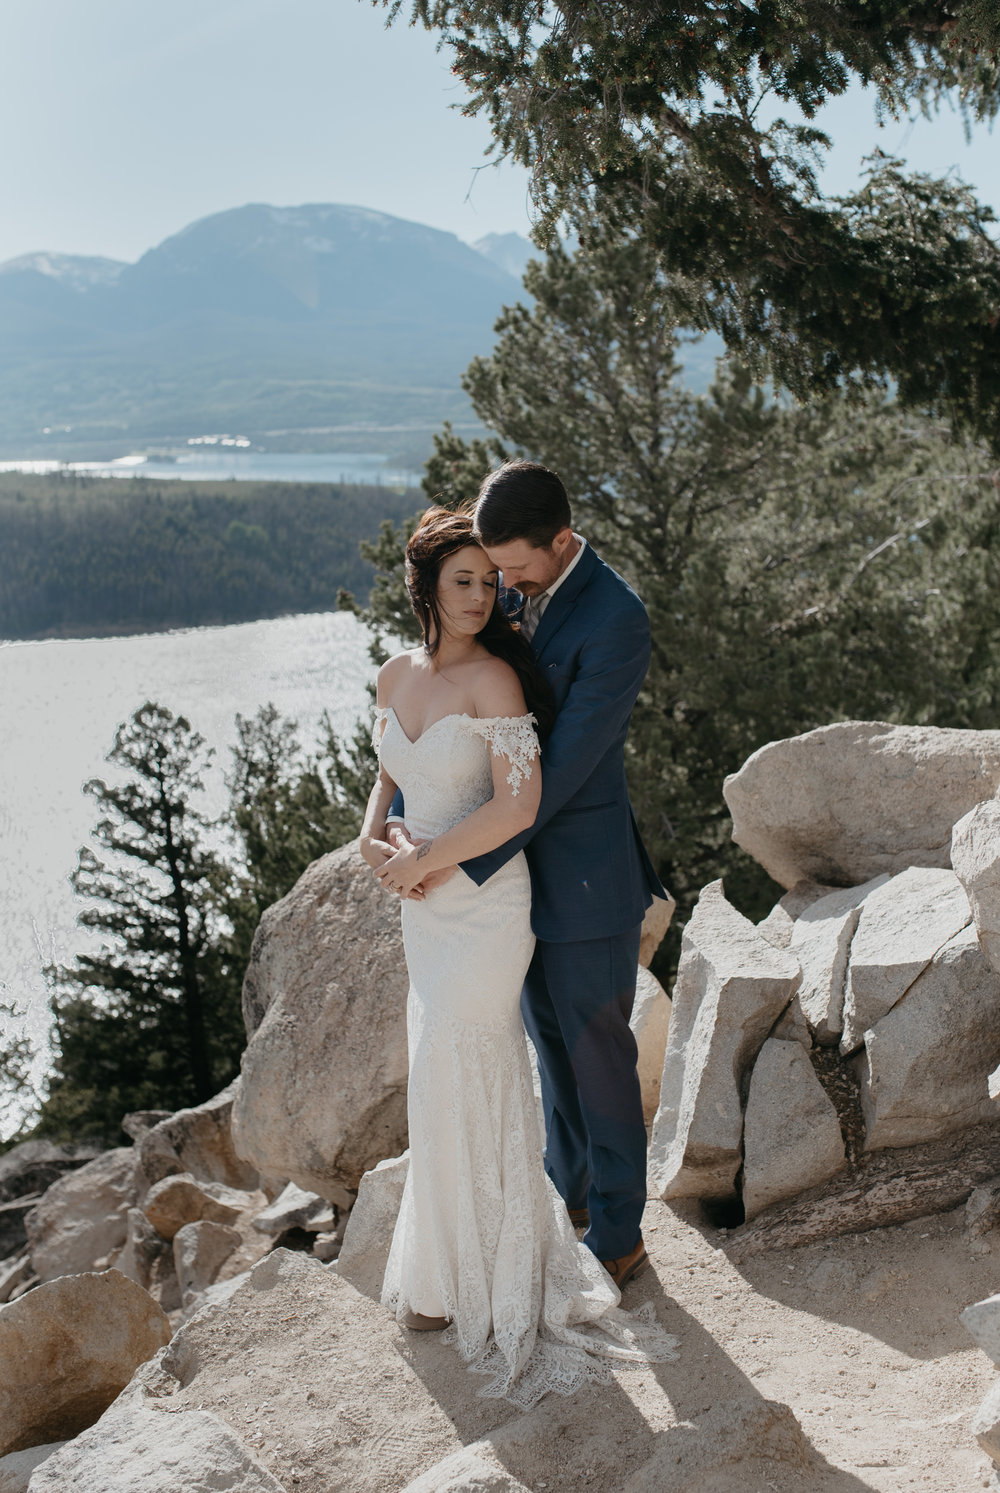 Colorado wedding photographer. Destination wedding in Colorado.